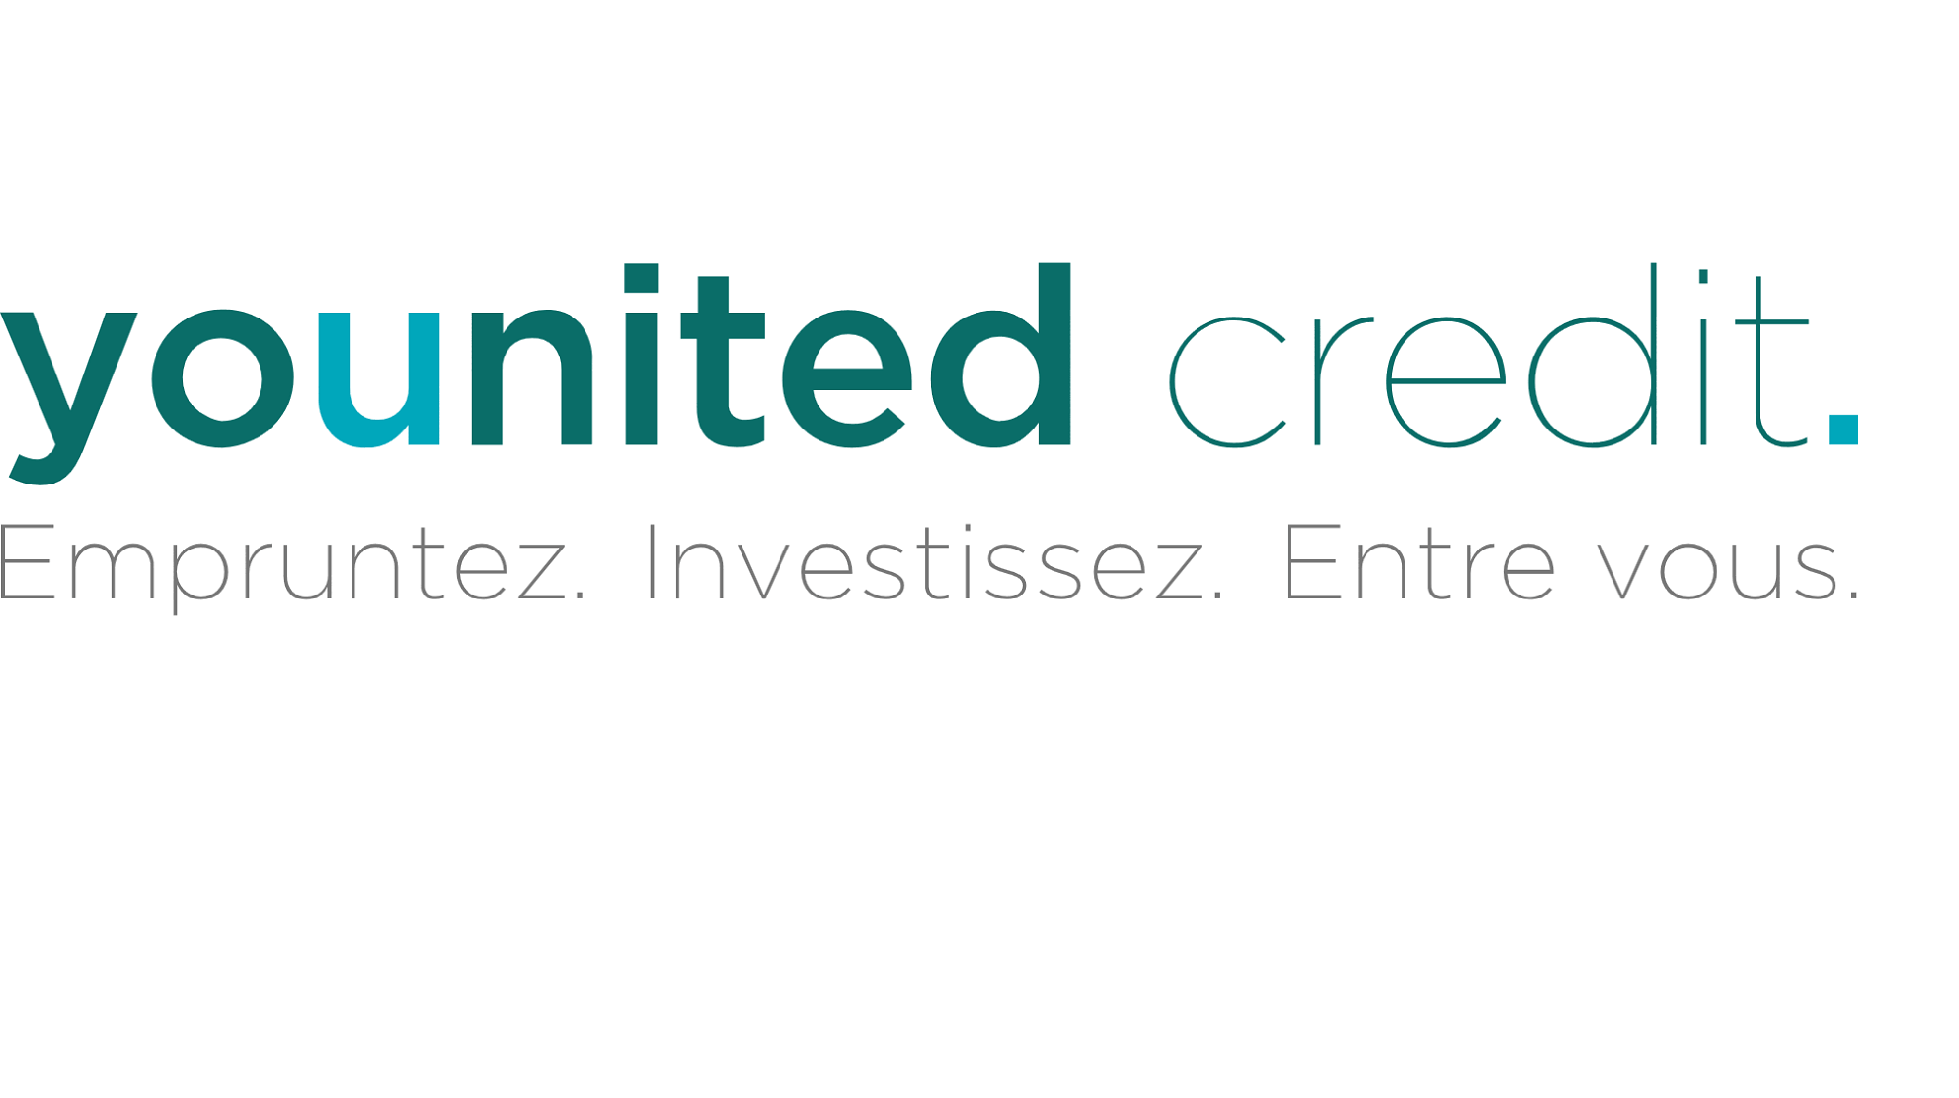 Comment contacter Younited Crédit?